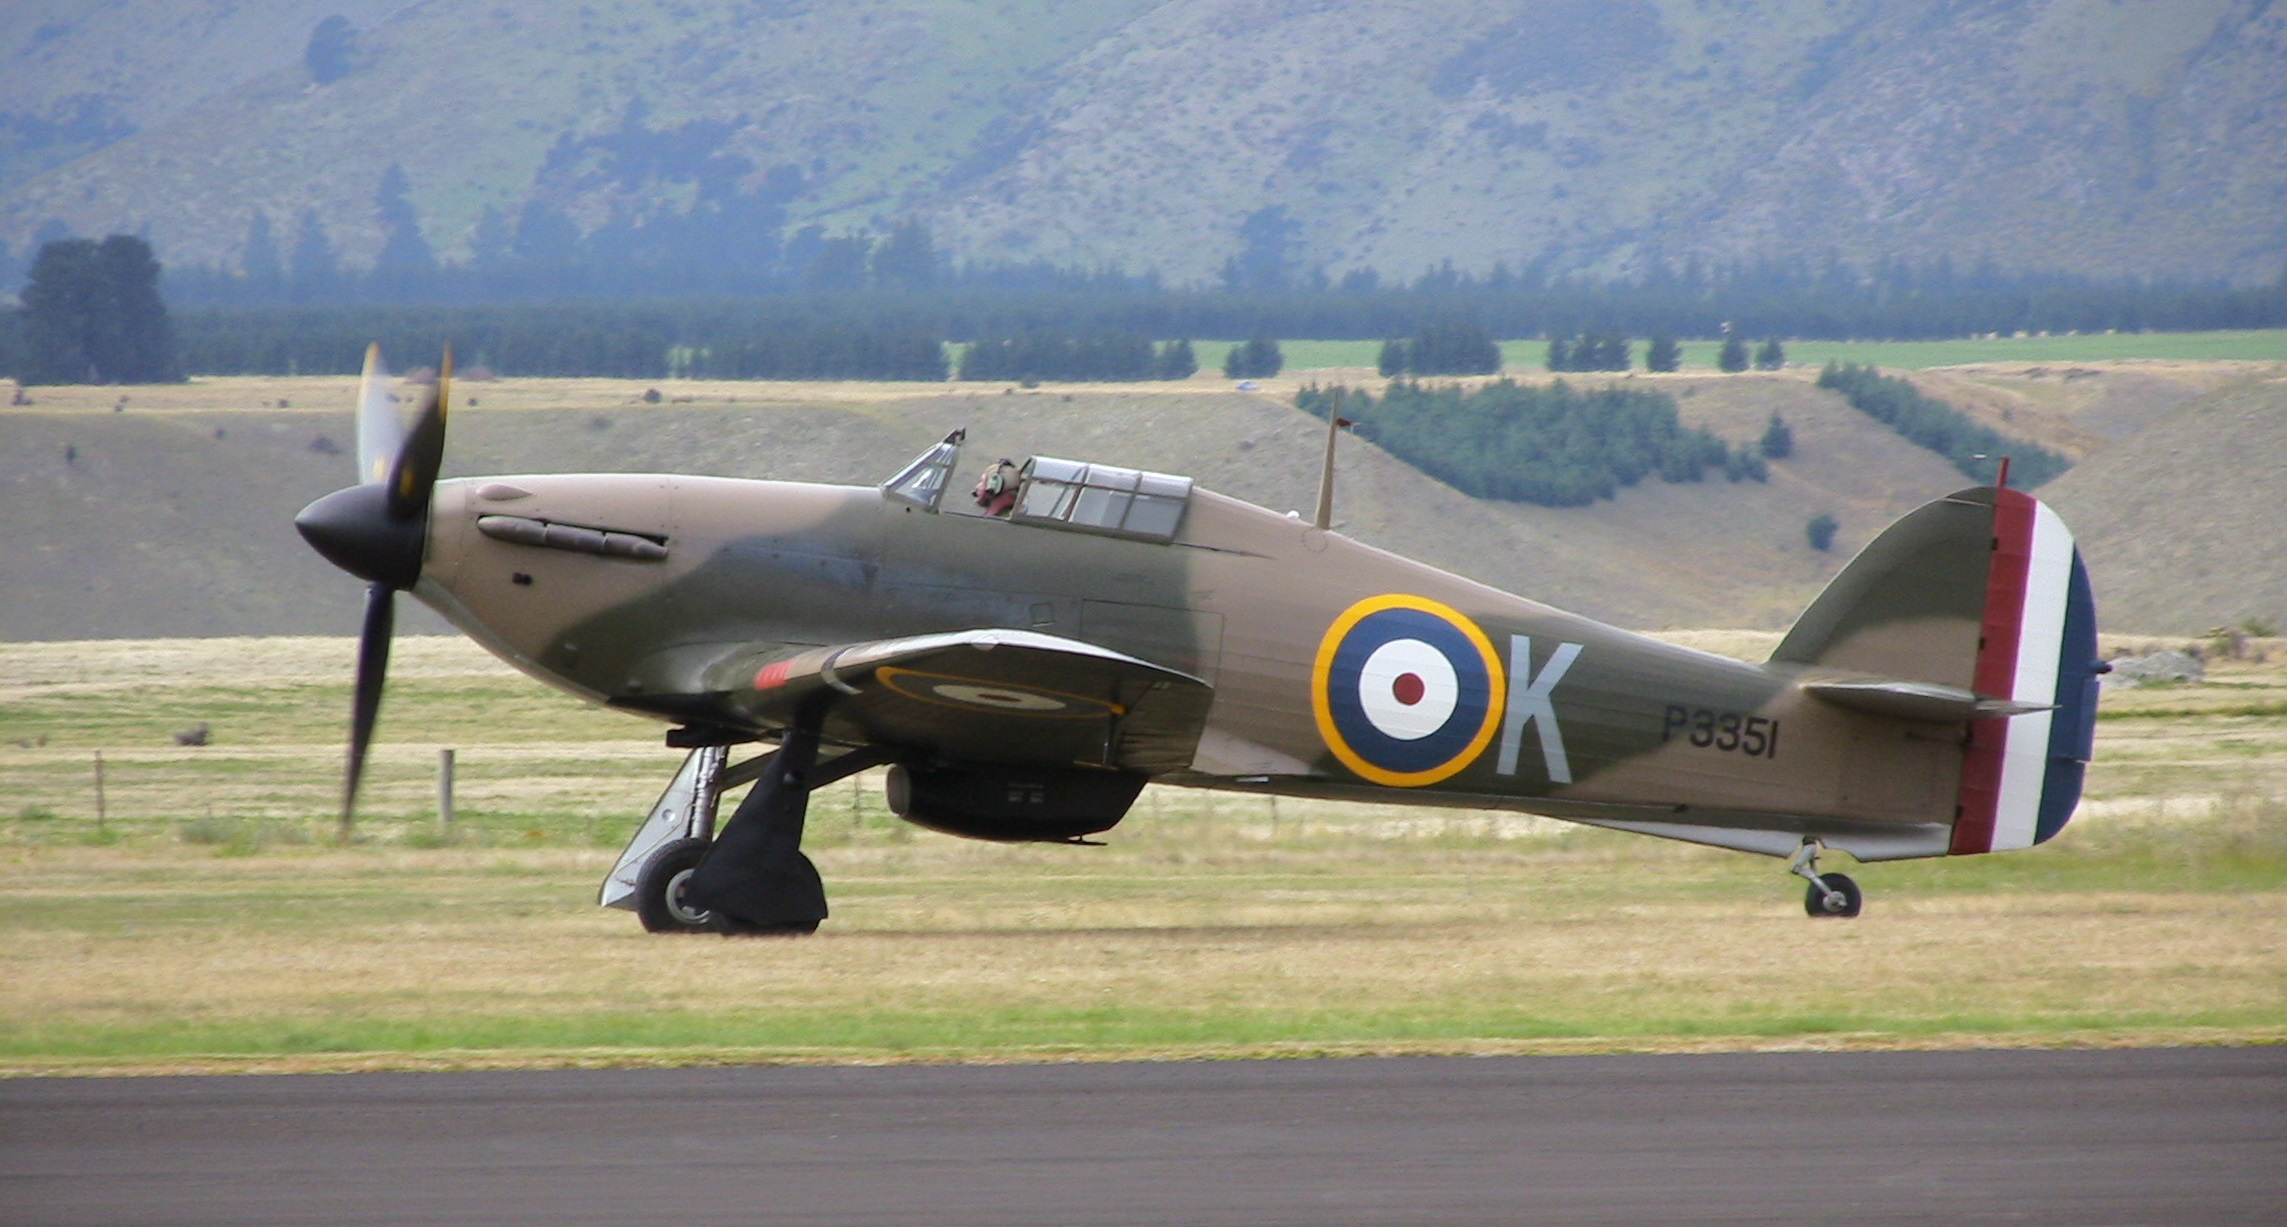 http://www.airshowtravel.co.nz/wp-content/uploads/Hurricane.jpg